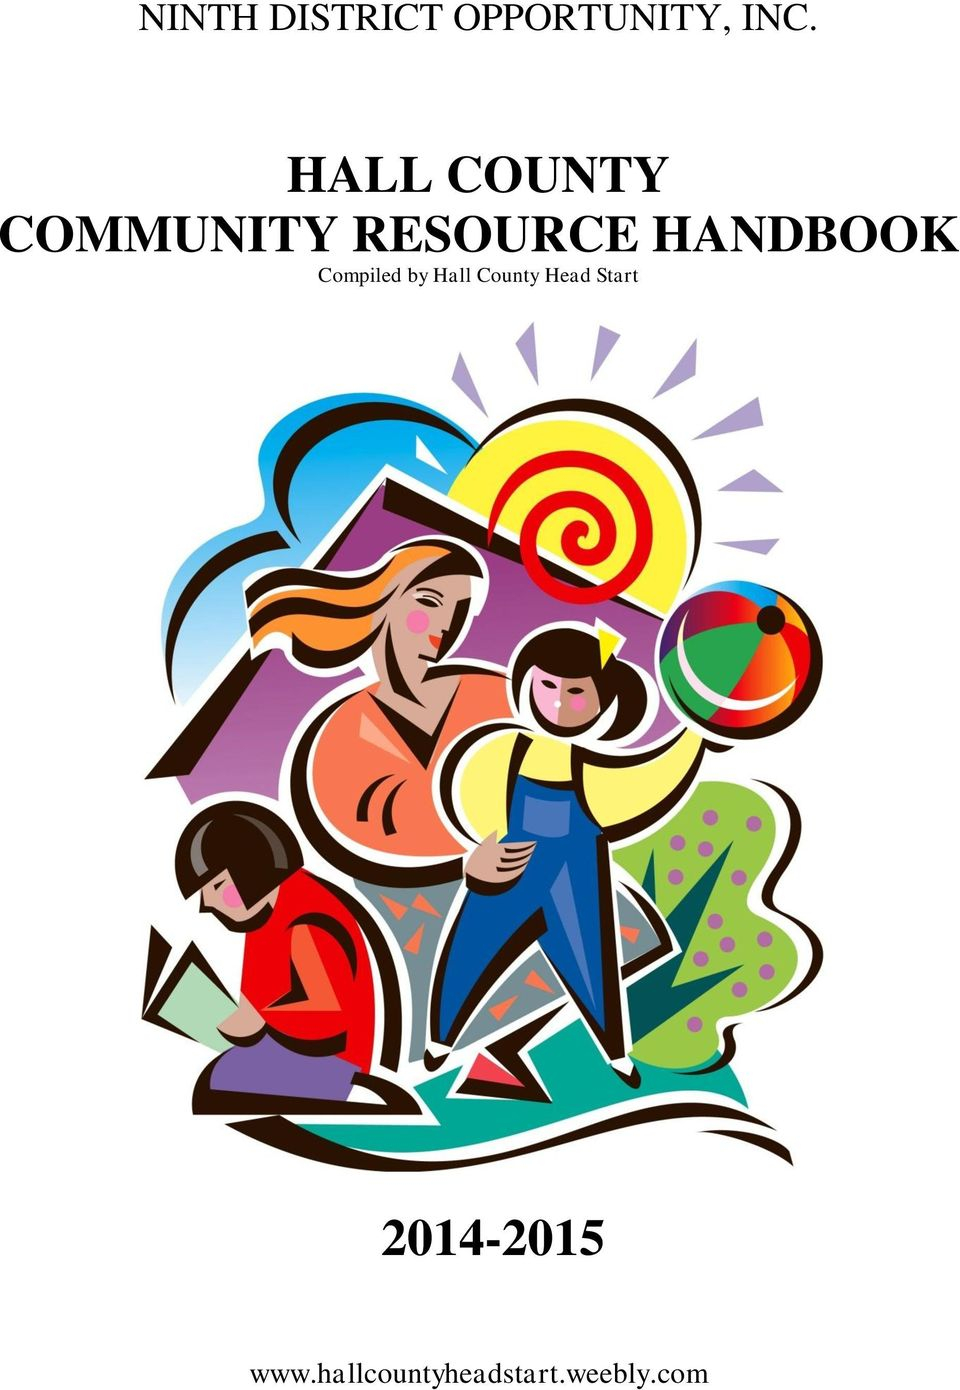 HANDBOOK Compiled by Hall County Head